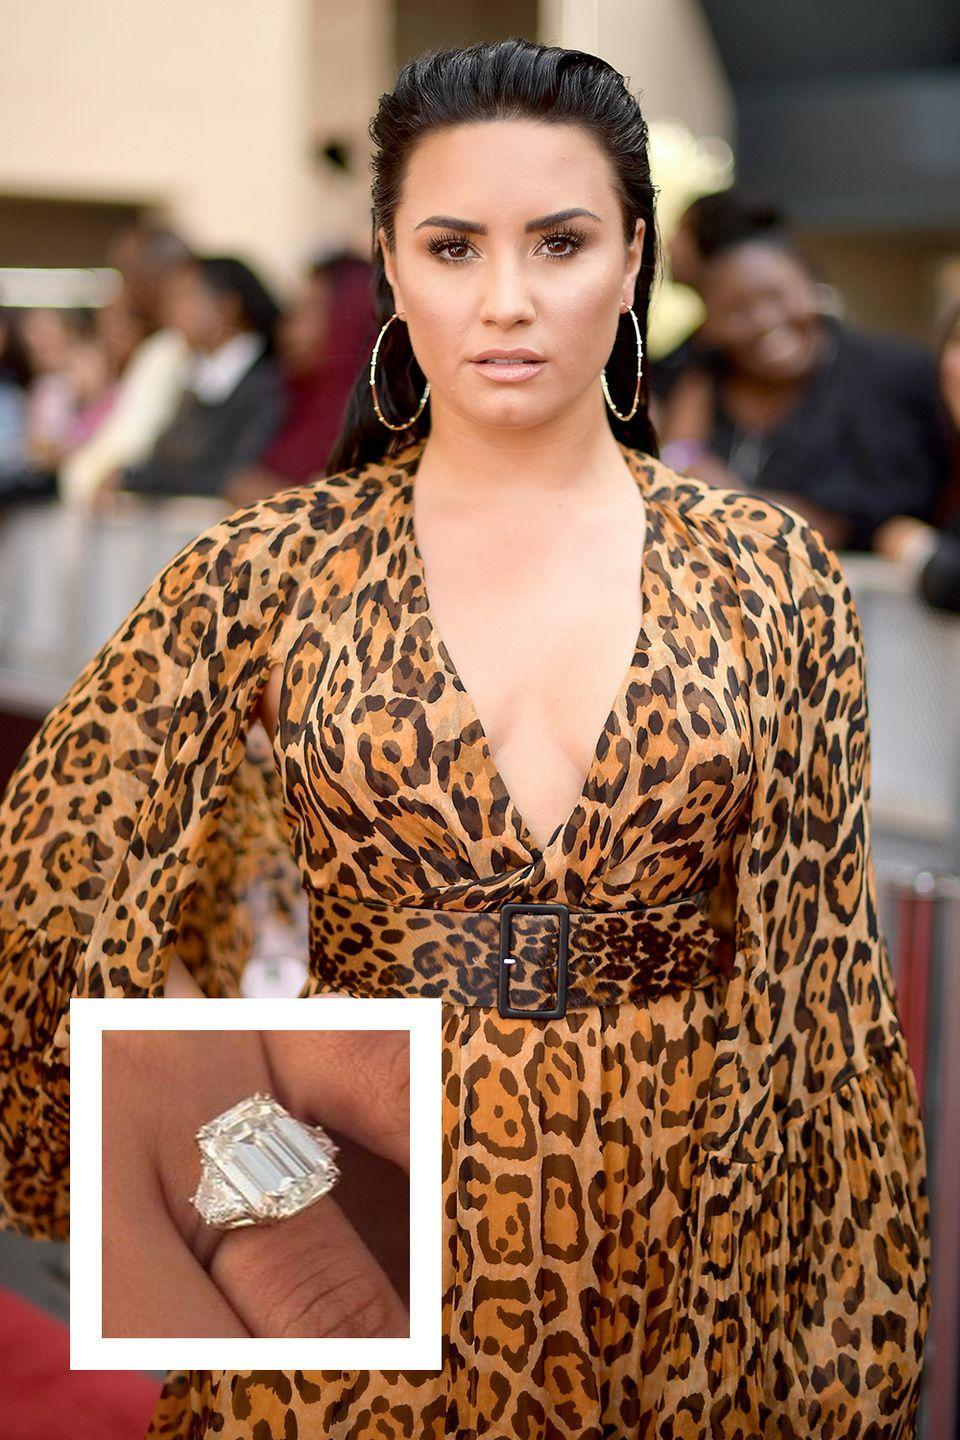 """<p>Just four months after actress and singer Demi Lovato made her relationship with Max Ehrich public, she <a href=""""https://www.instagram.com/p/CC-S49WhMDR/"""" rel=""""nofollow noopener"""" target=""""_blank"""" data-ylk=""""slk:took to Instagram to announce the news of her engagement"""" class=""""link rapid-noclick-resp"""">took to Instagram to announce the news of her engagement</a>. While the photos were adorable (Ehrich proposed on the beach), we couldn't help but notice her massive rock. Jewelry experts have weighed in, and the ring likely cost her fiancé anywhere from $500,000 to $1 million. </p>"""